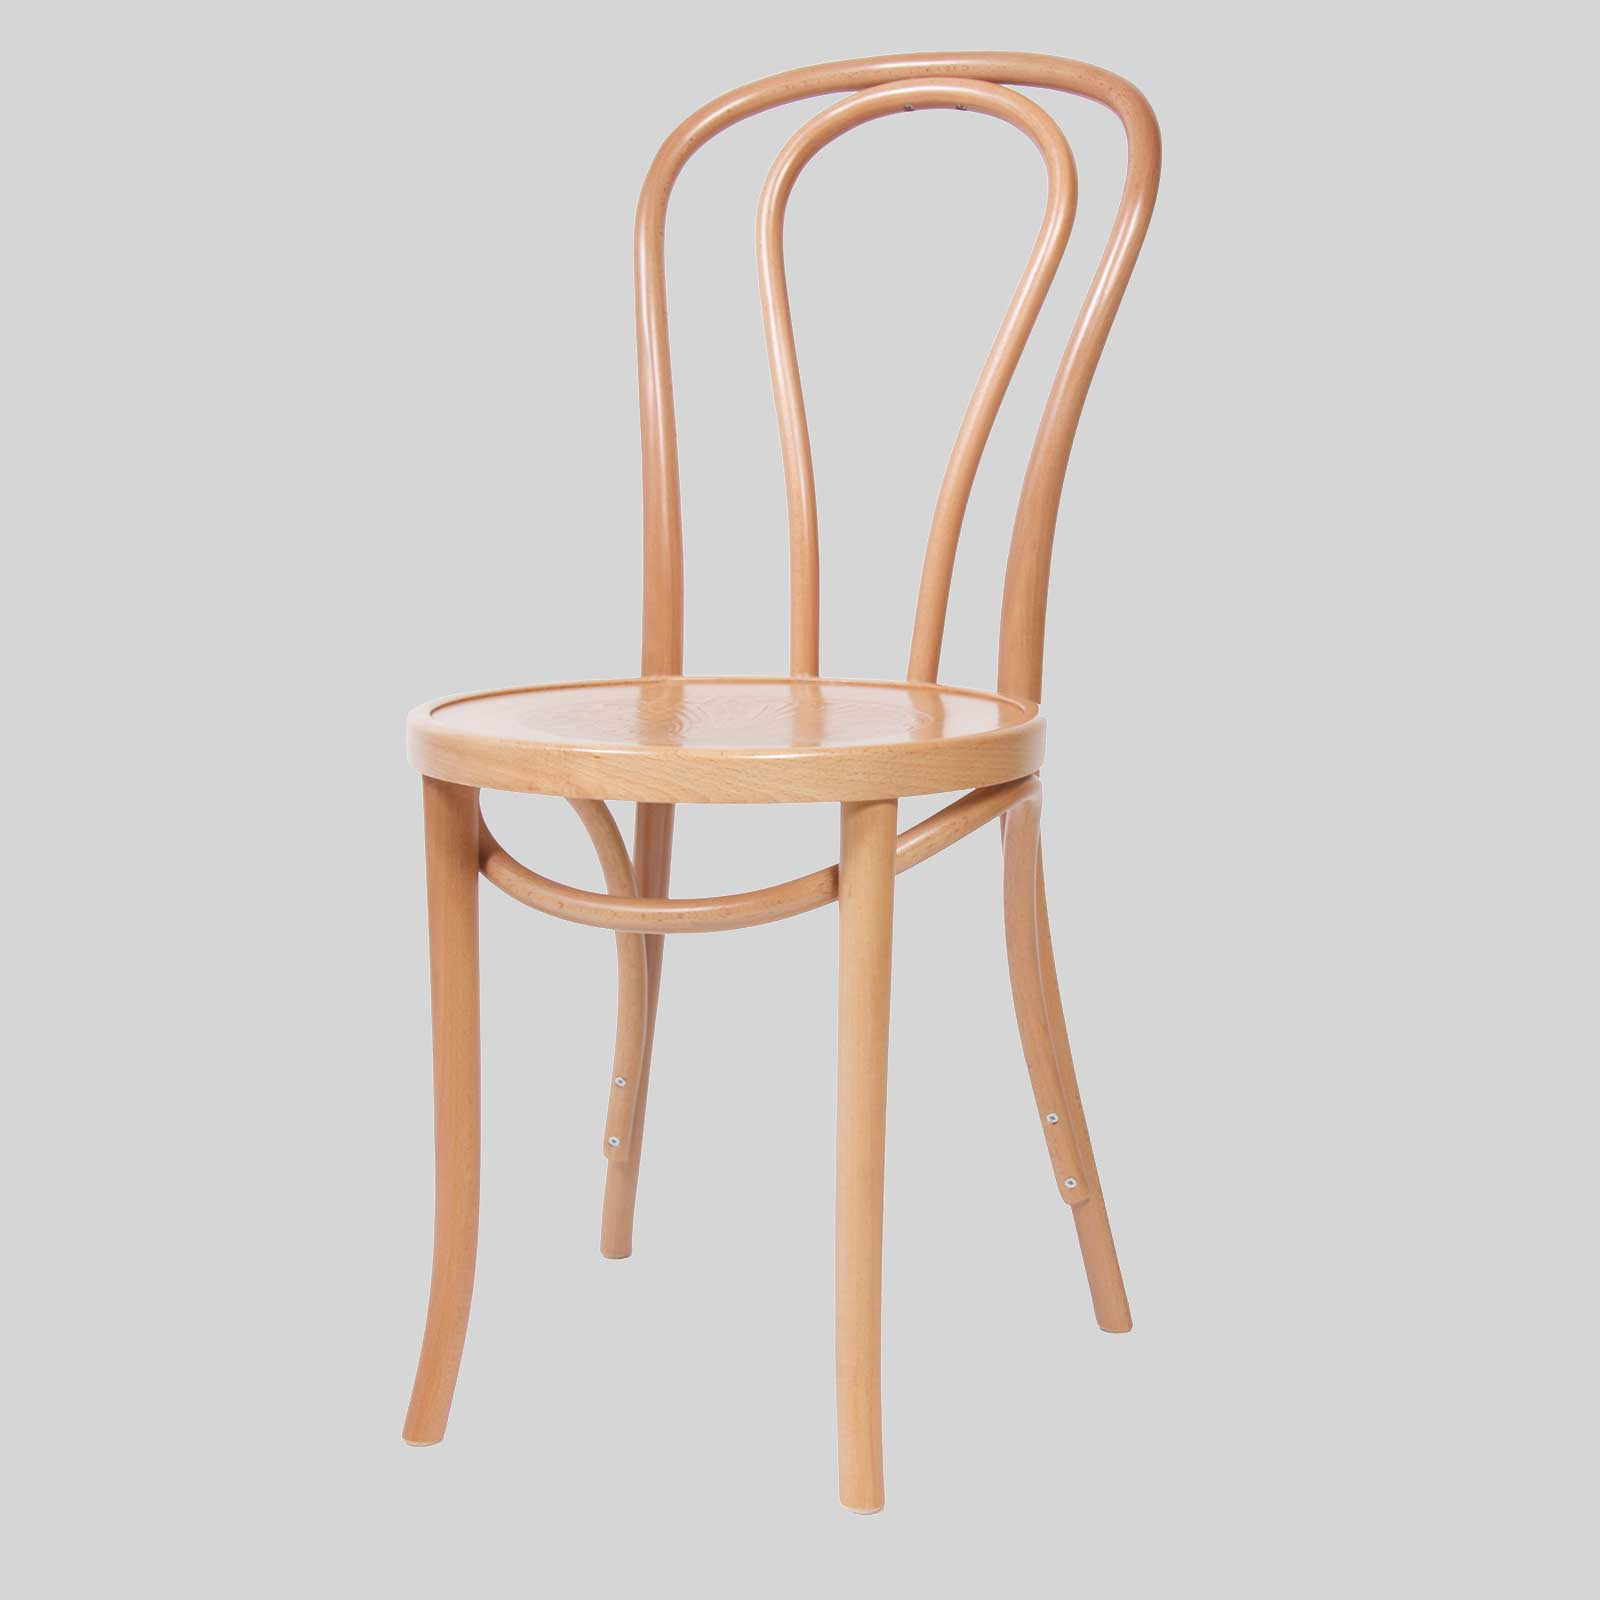 Bentwood Chair Made In Poland Classic Thonet Style No 14